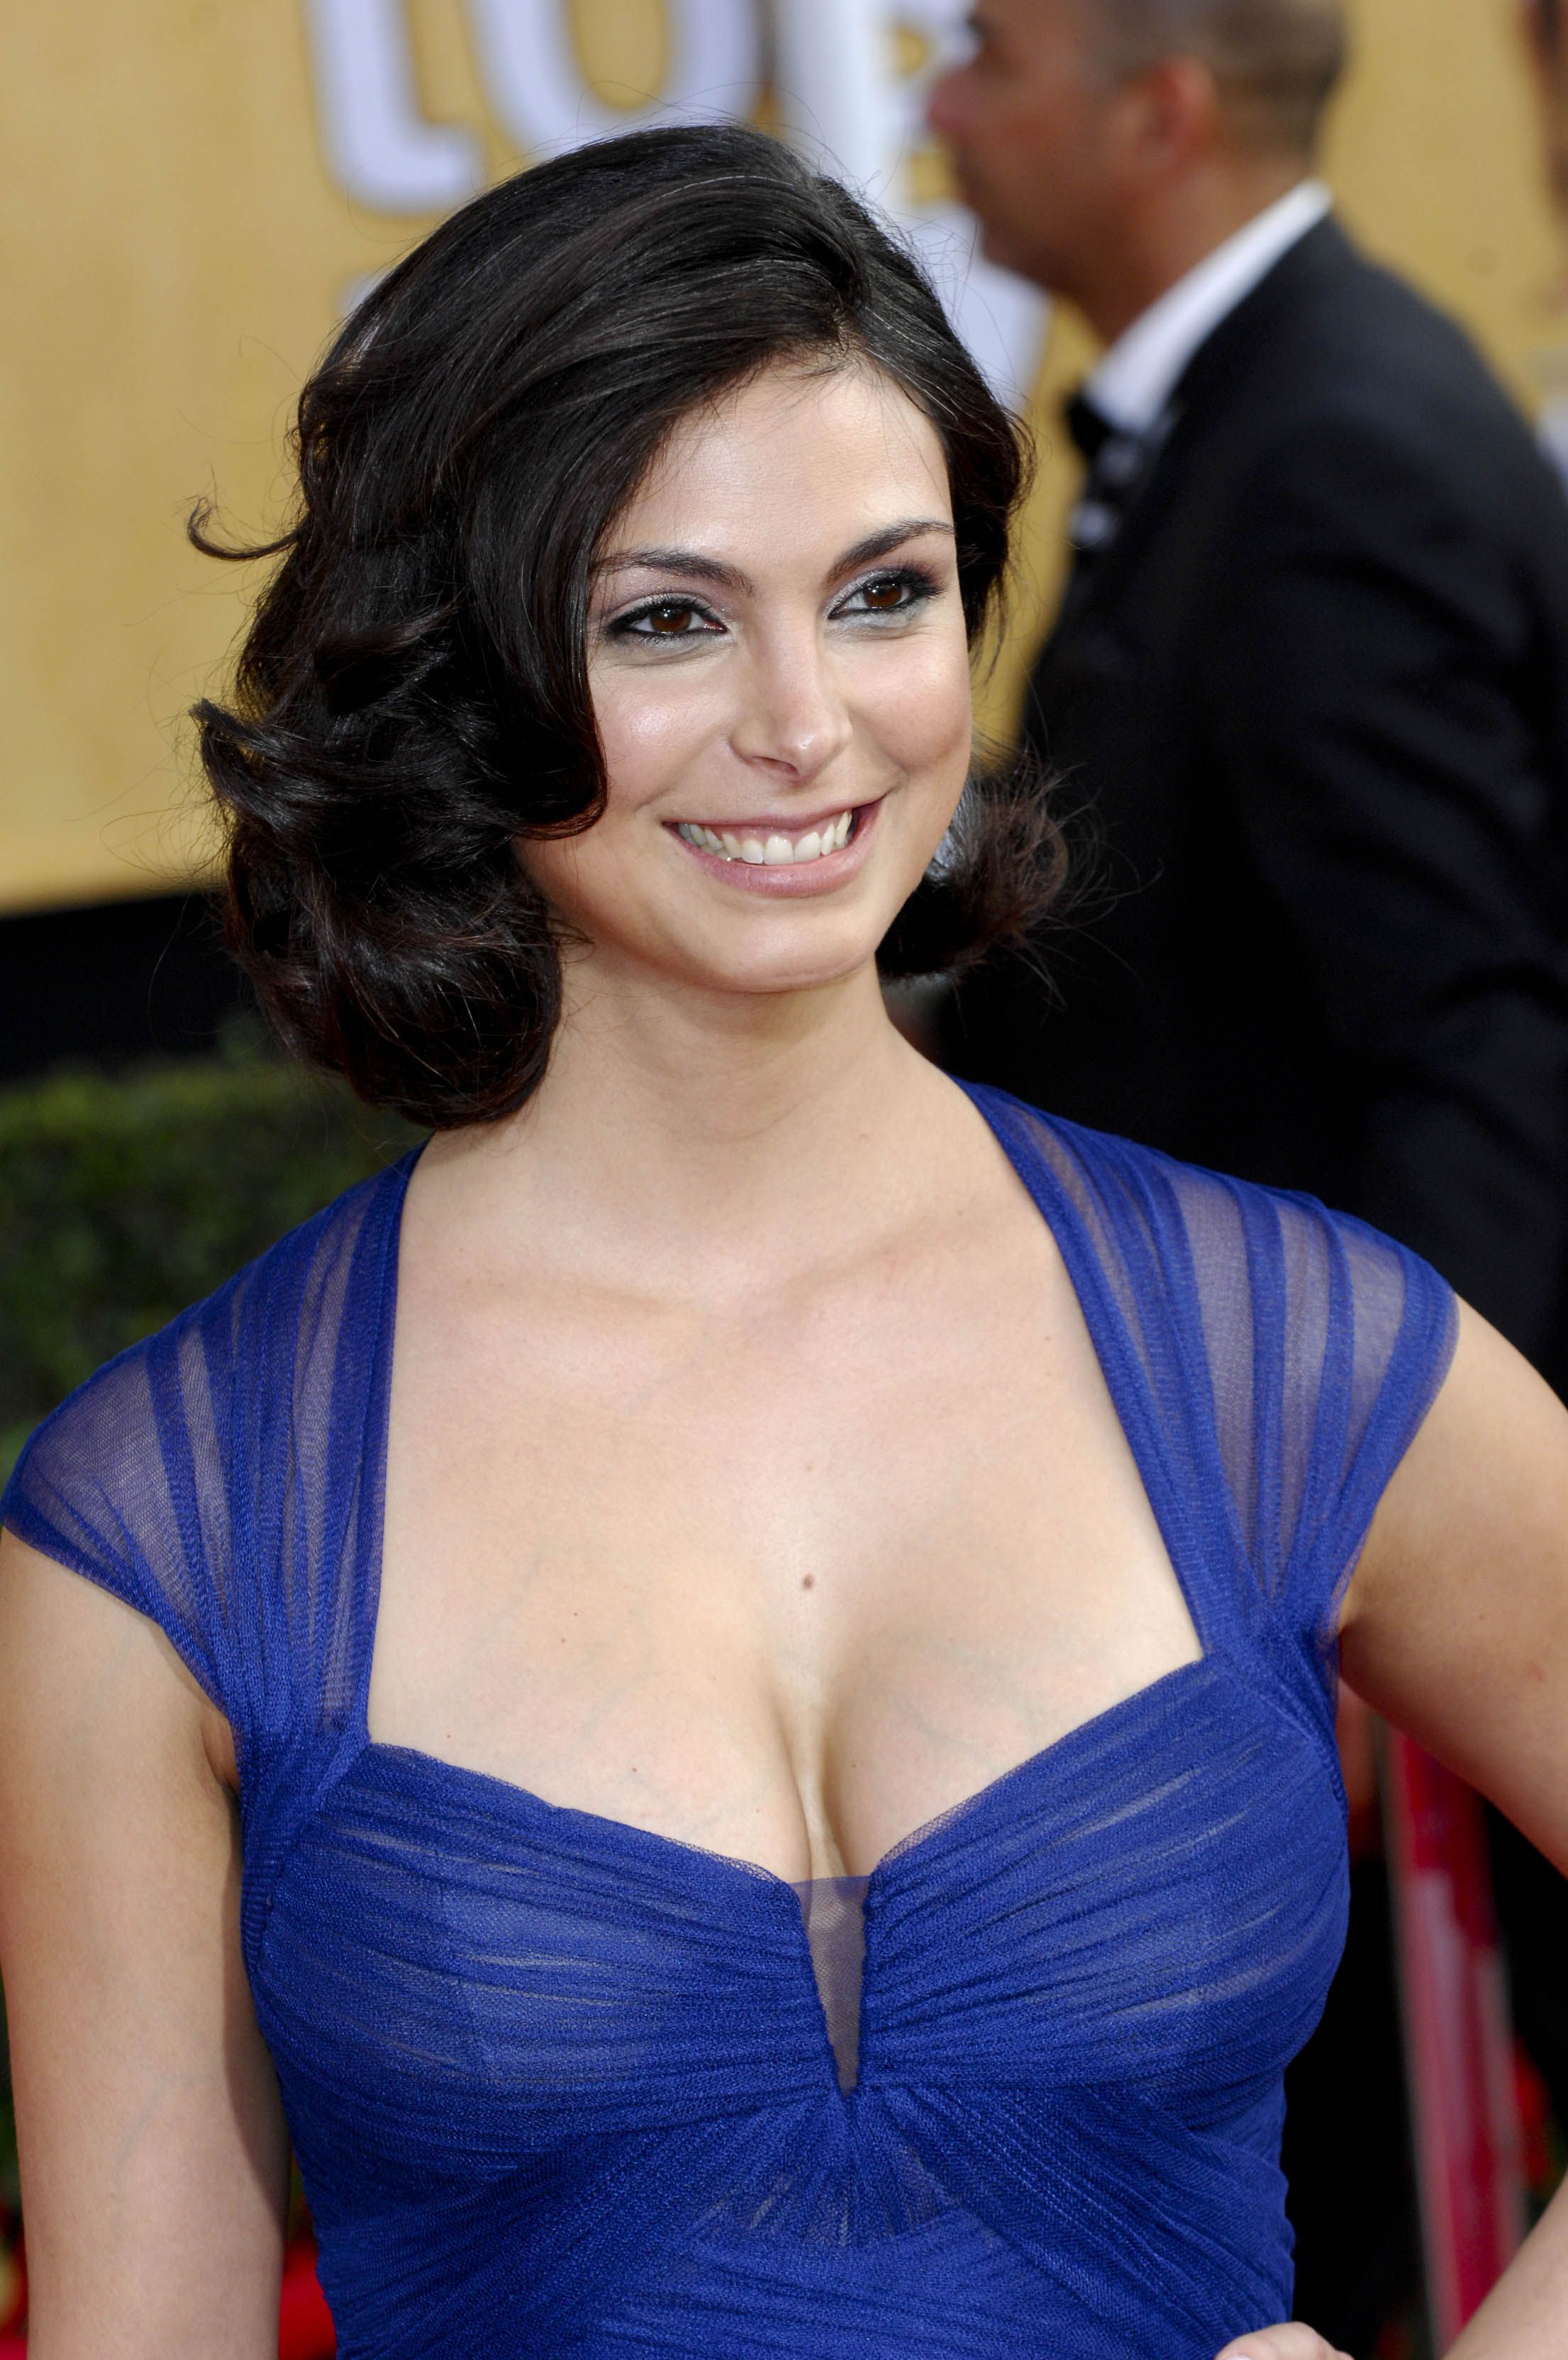 Hacked Morena Baccarin naked (96 photos), Ass, Fappening, Selfie, in bikini 2020